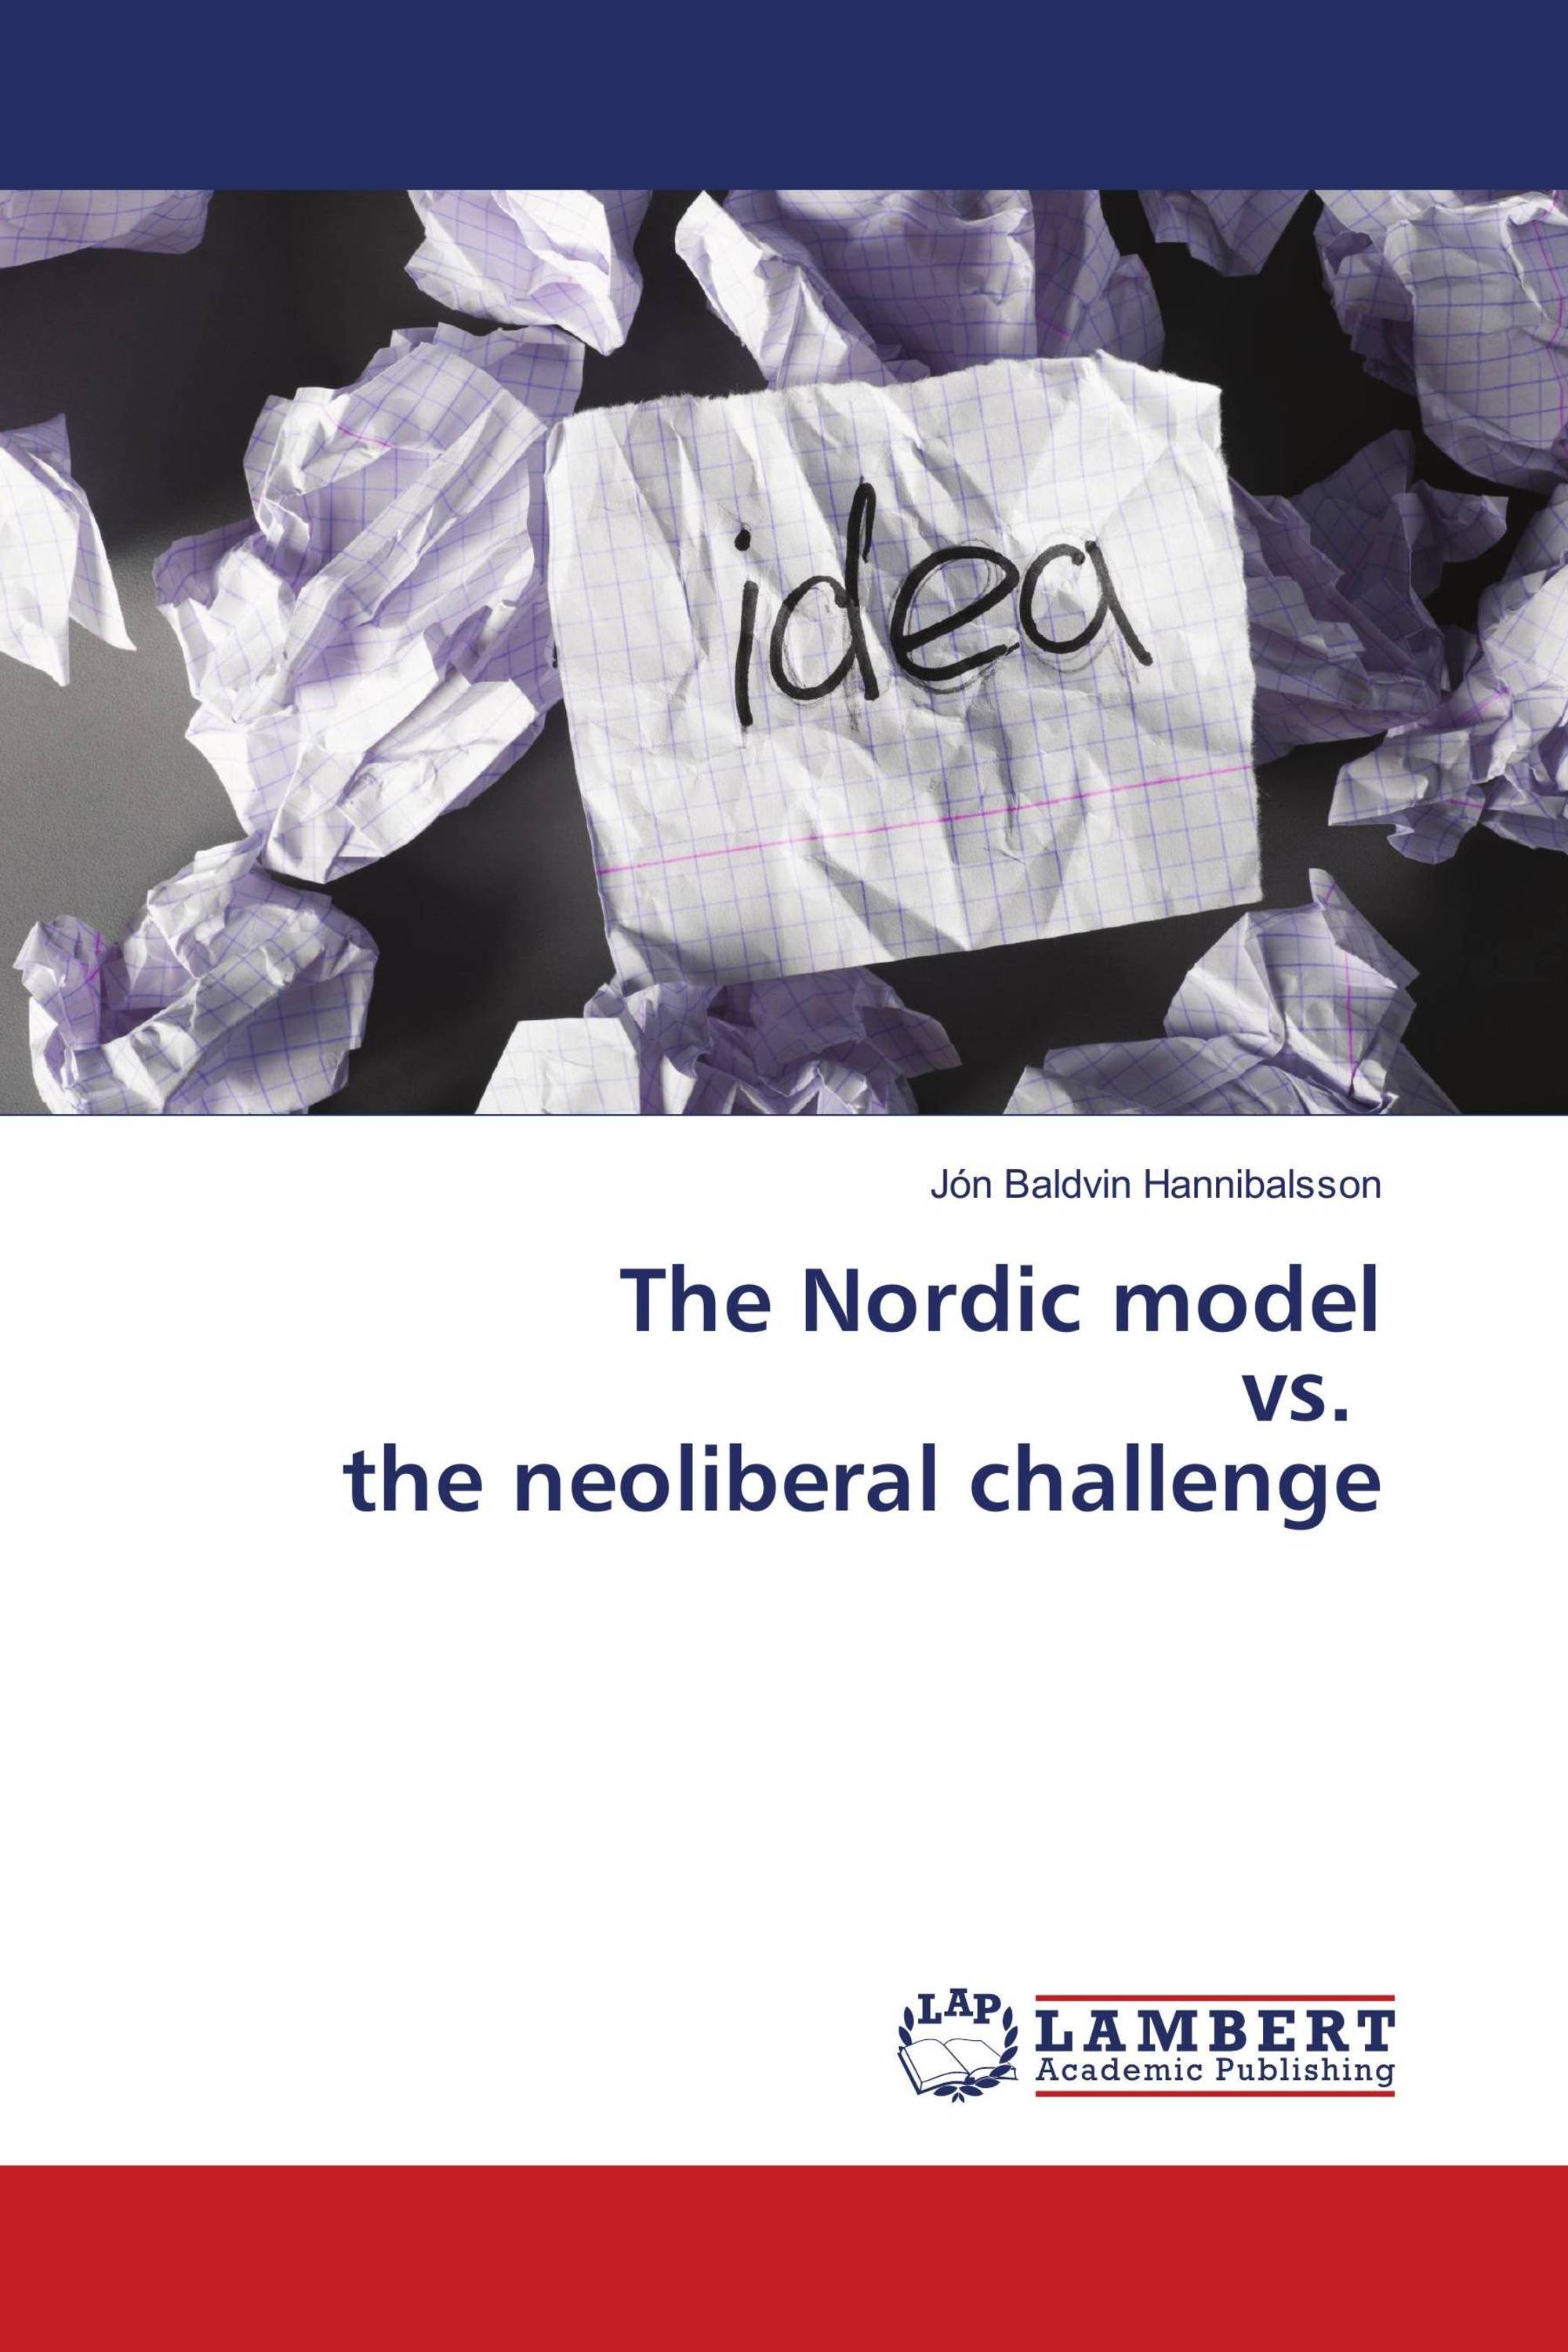 The Nordic model vs. the neoliberal challenge